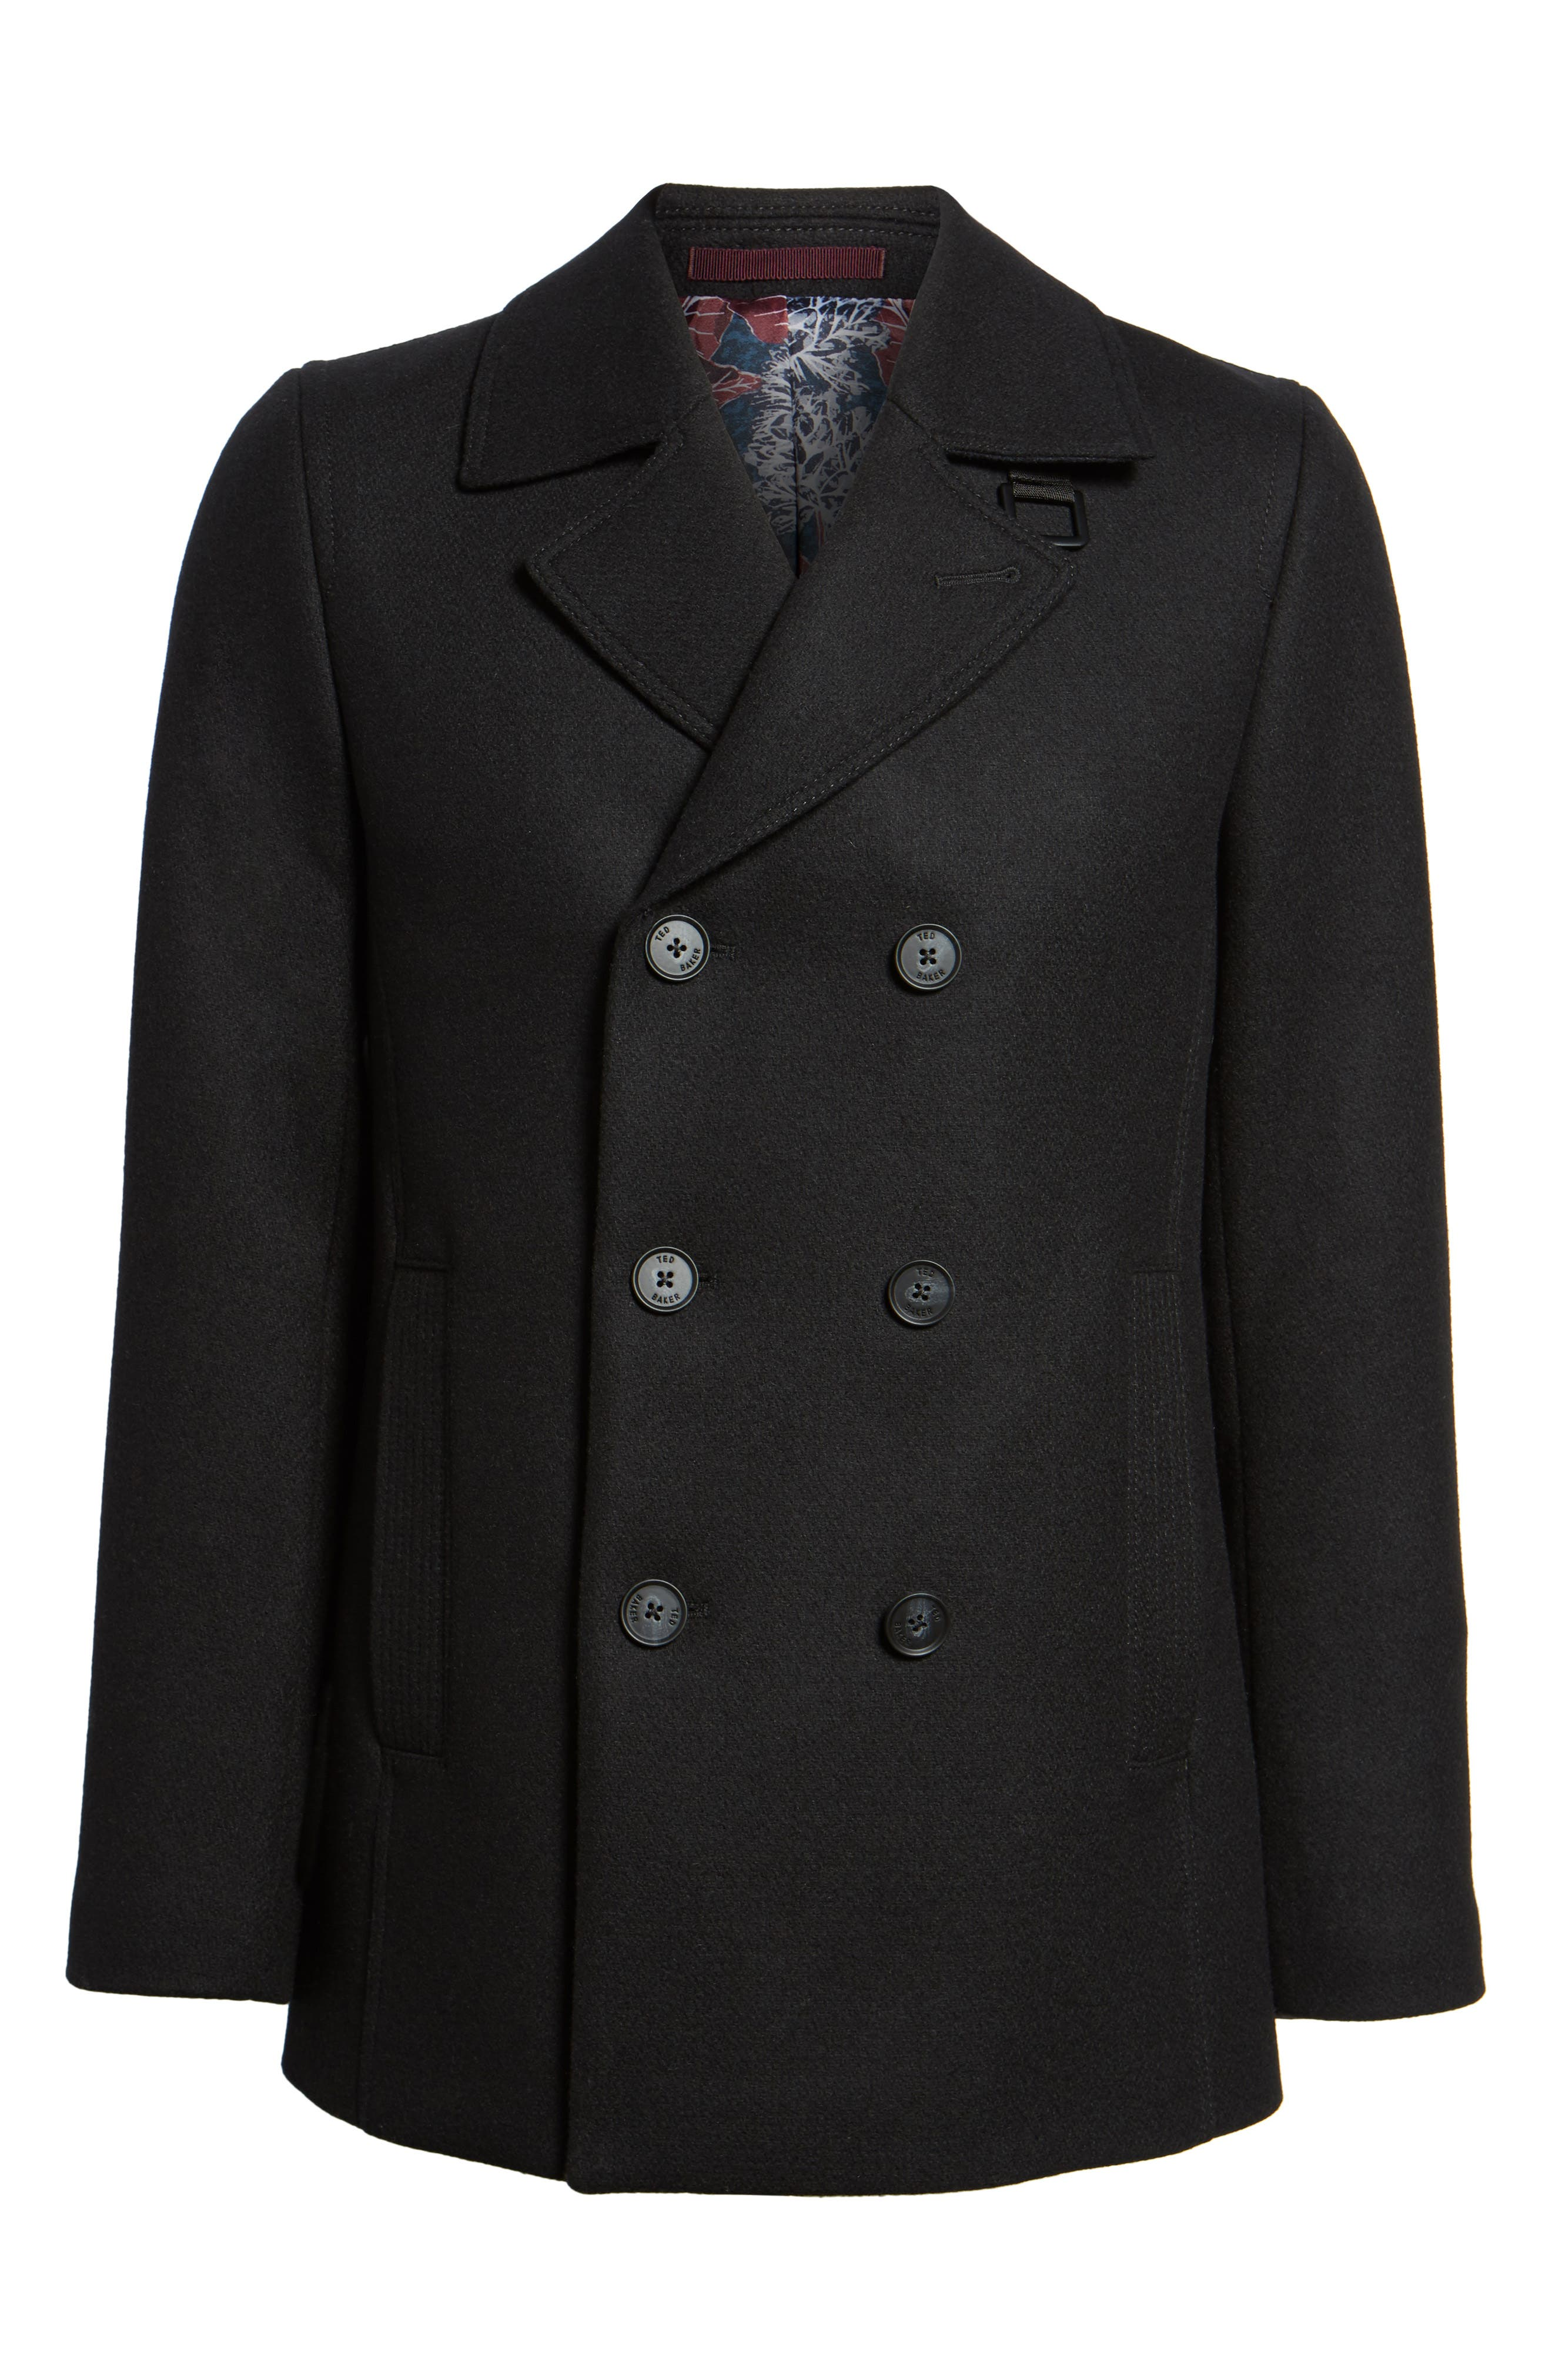 Zachary Trim Fit Double Breasted Peacoat,                             Alternate thumbnail 5, color,                             001